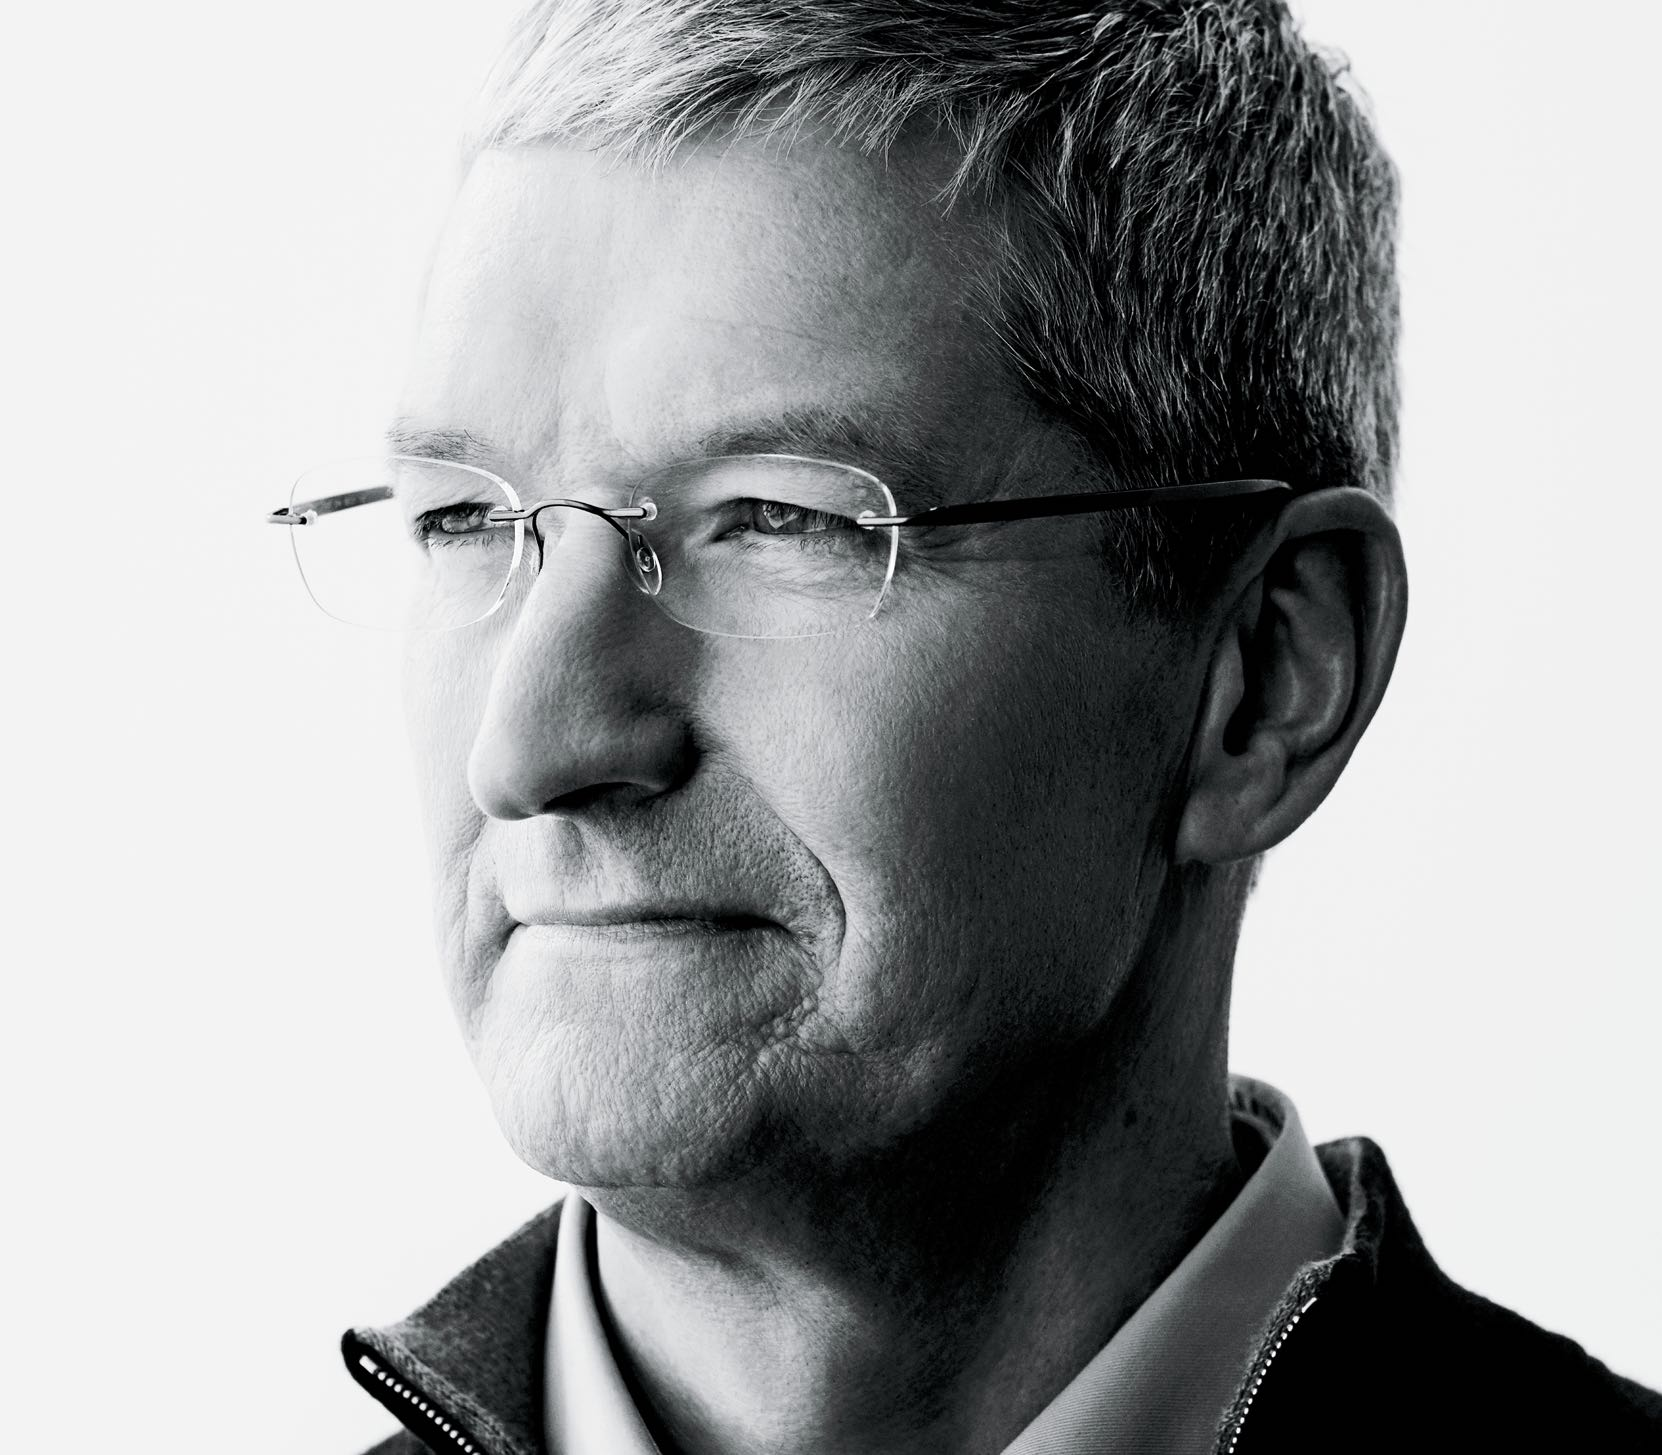 Tim Cook, Apple - Email to all Apple employees regarding the tragic events in Charlottesville. (Also see Microsoft's Satya Nadella on same topic) August 2017